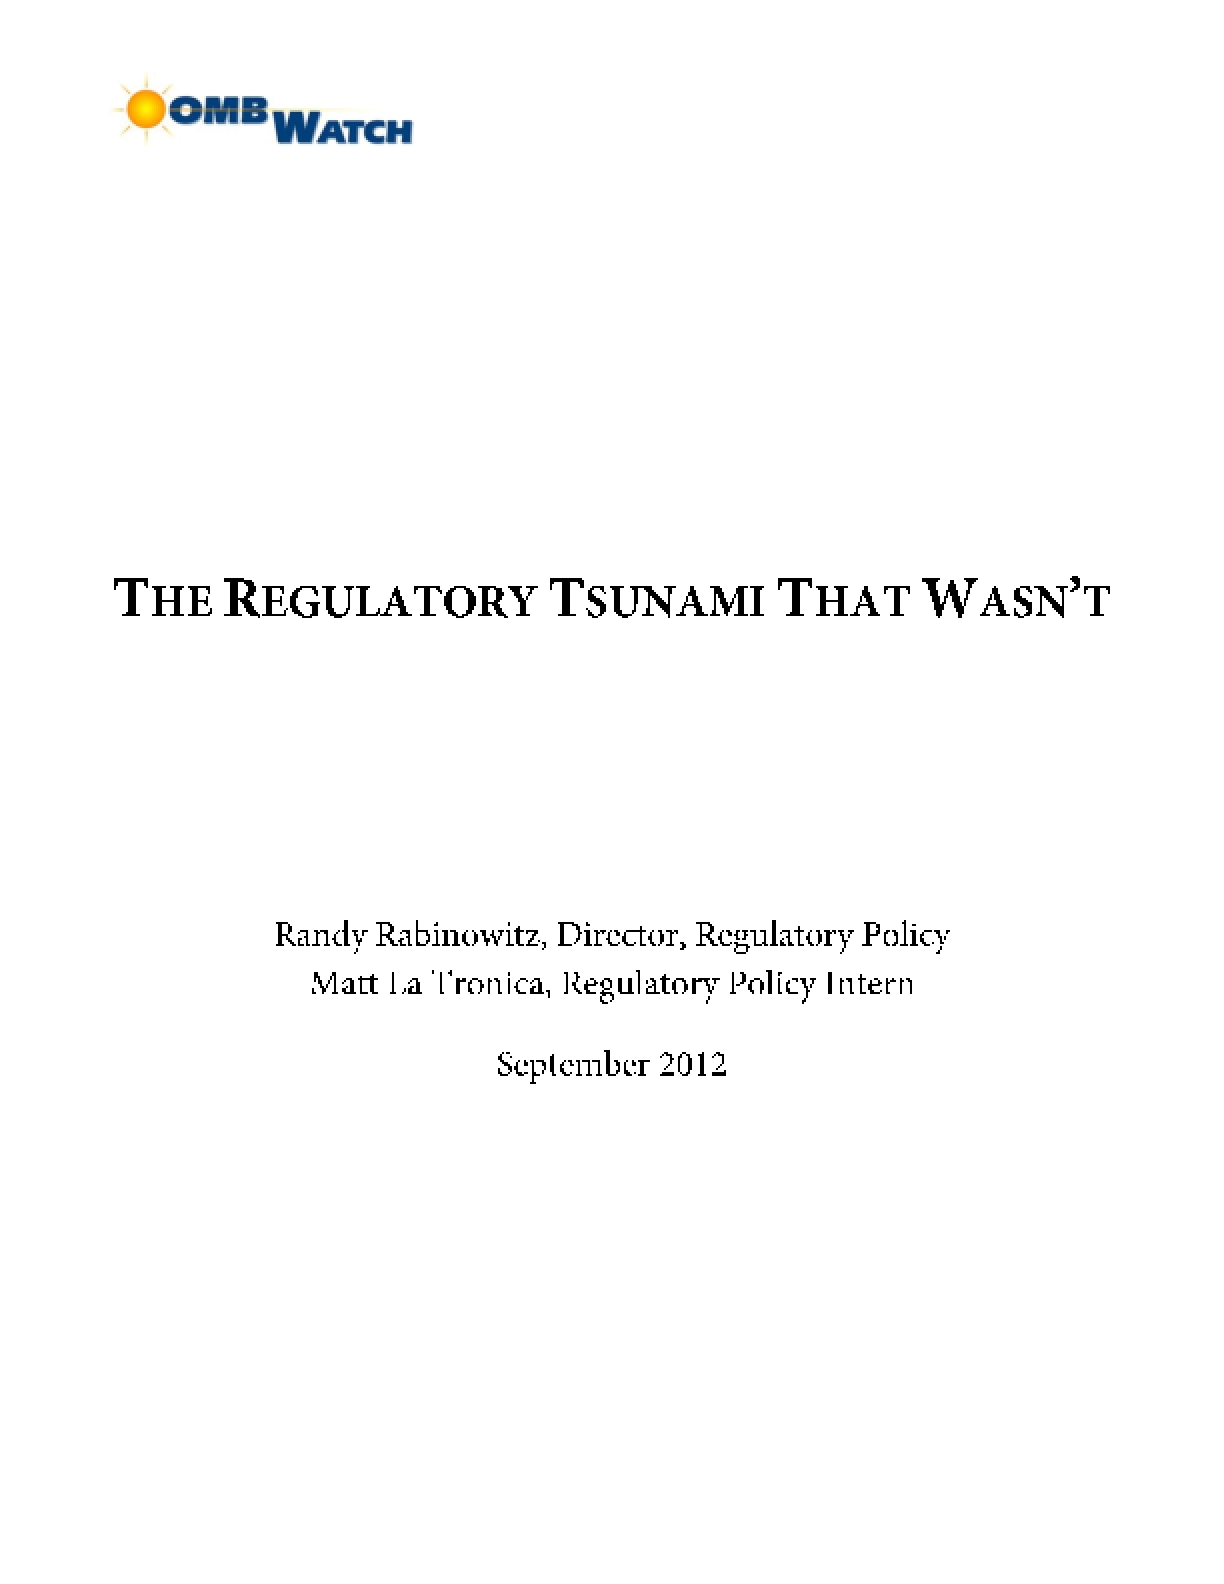 The Regulatory Tsunami That Wasn't